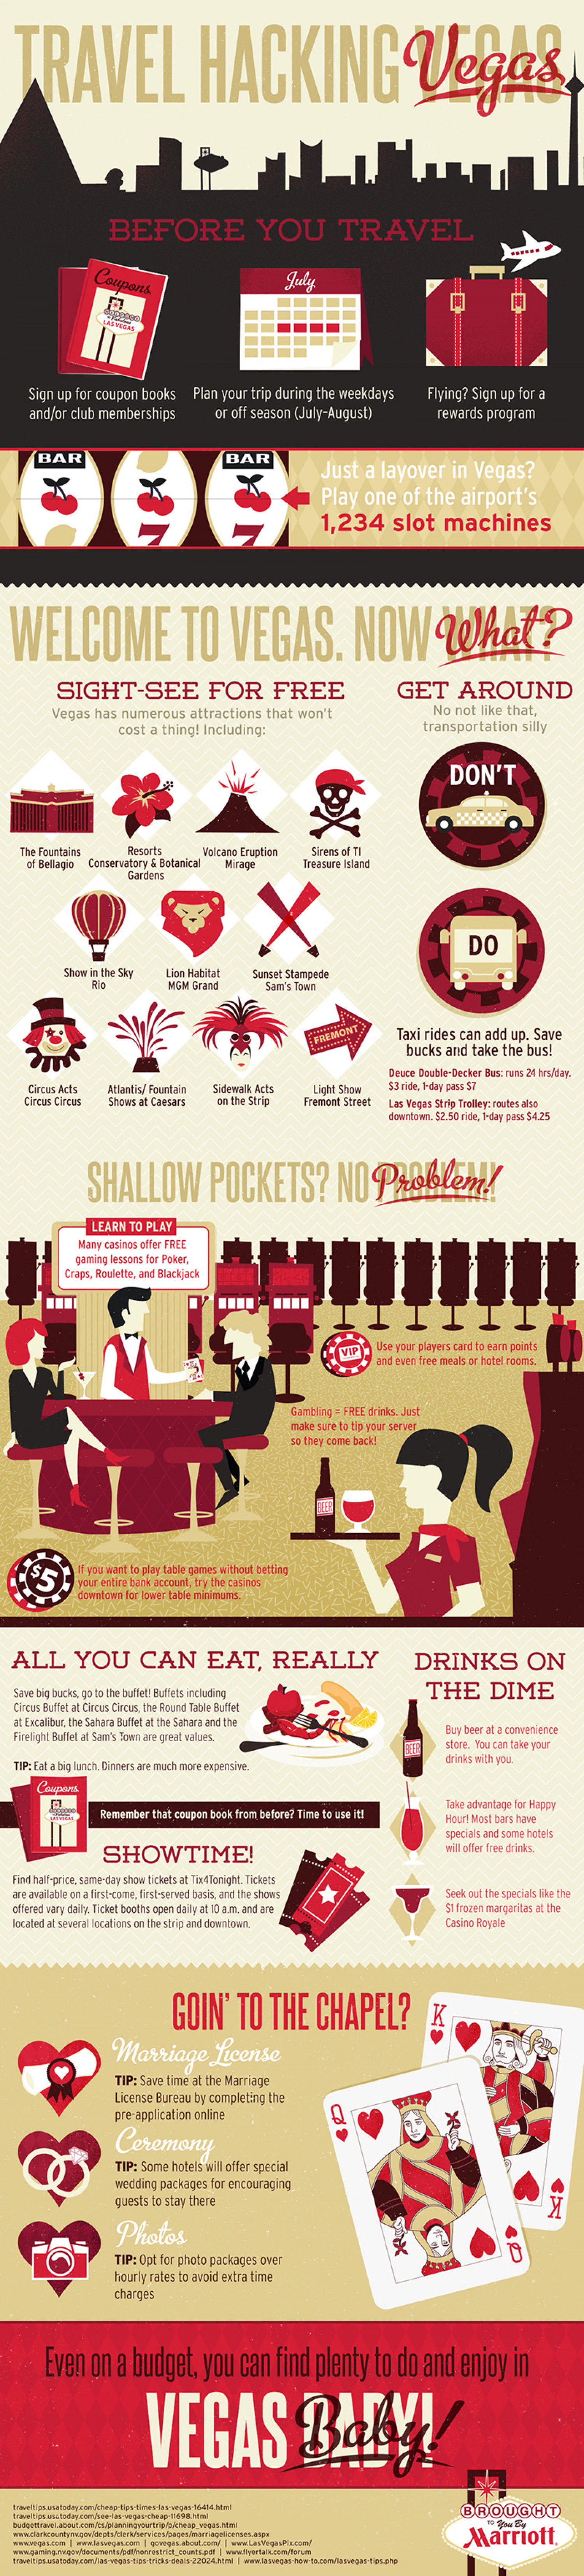 Travel Hacking Vegas: Las Vegas Deals Infographic